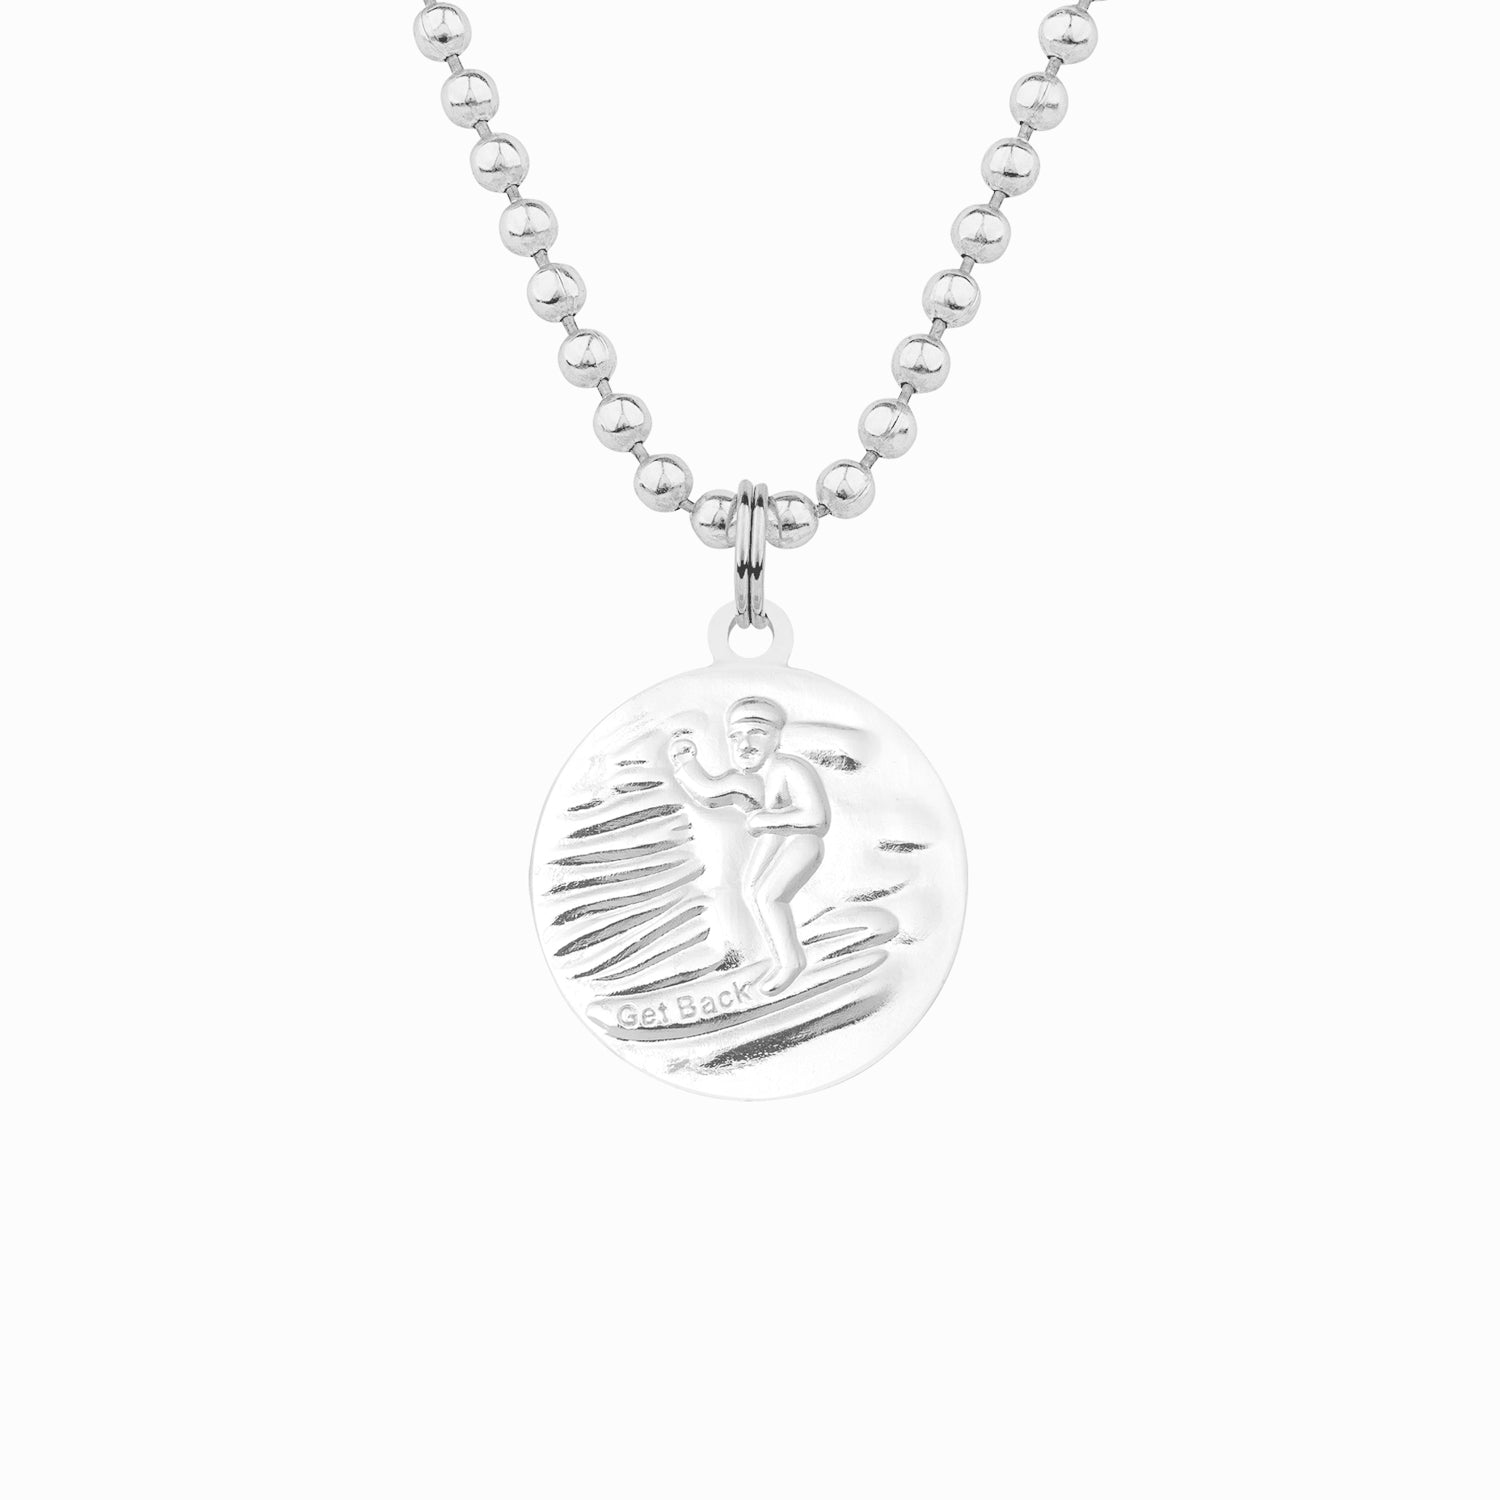 back of aqua and white st christopher necklace